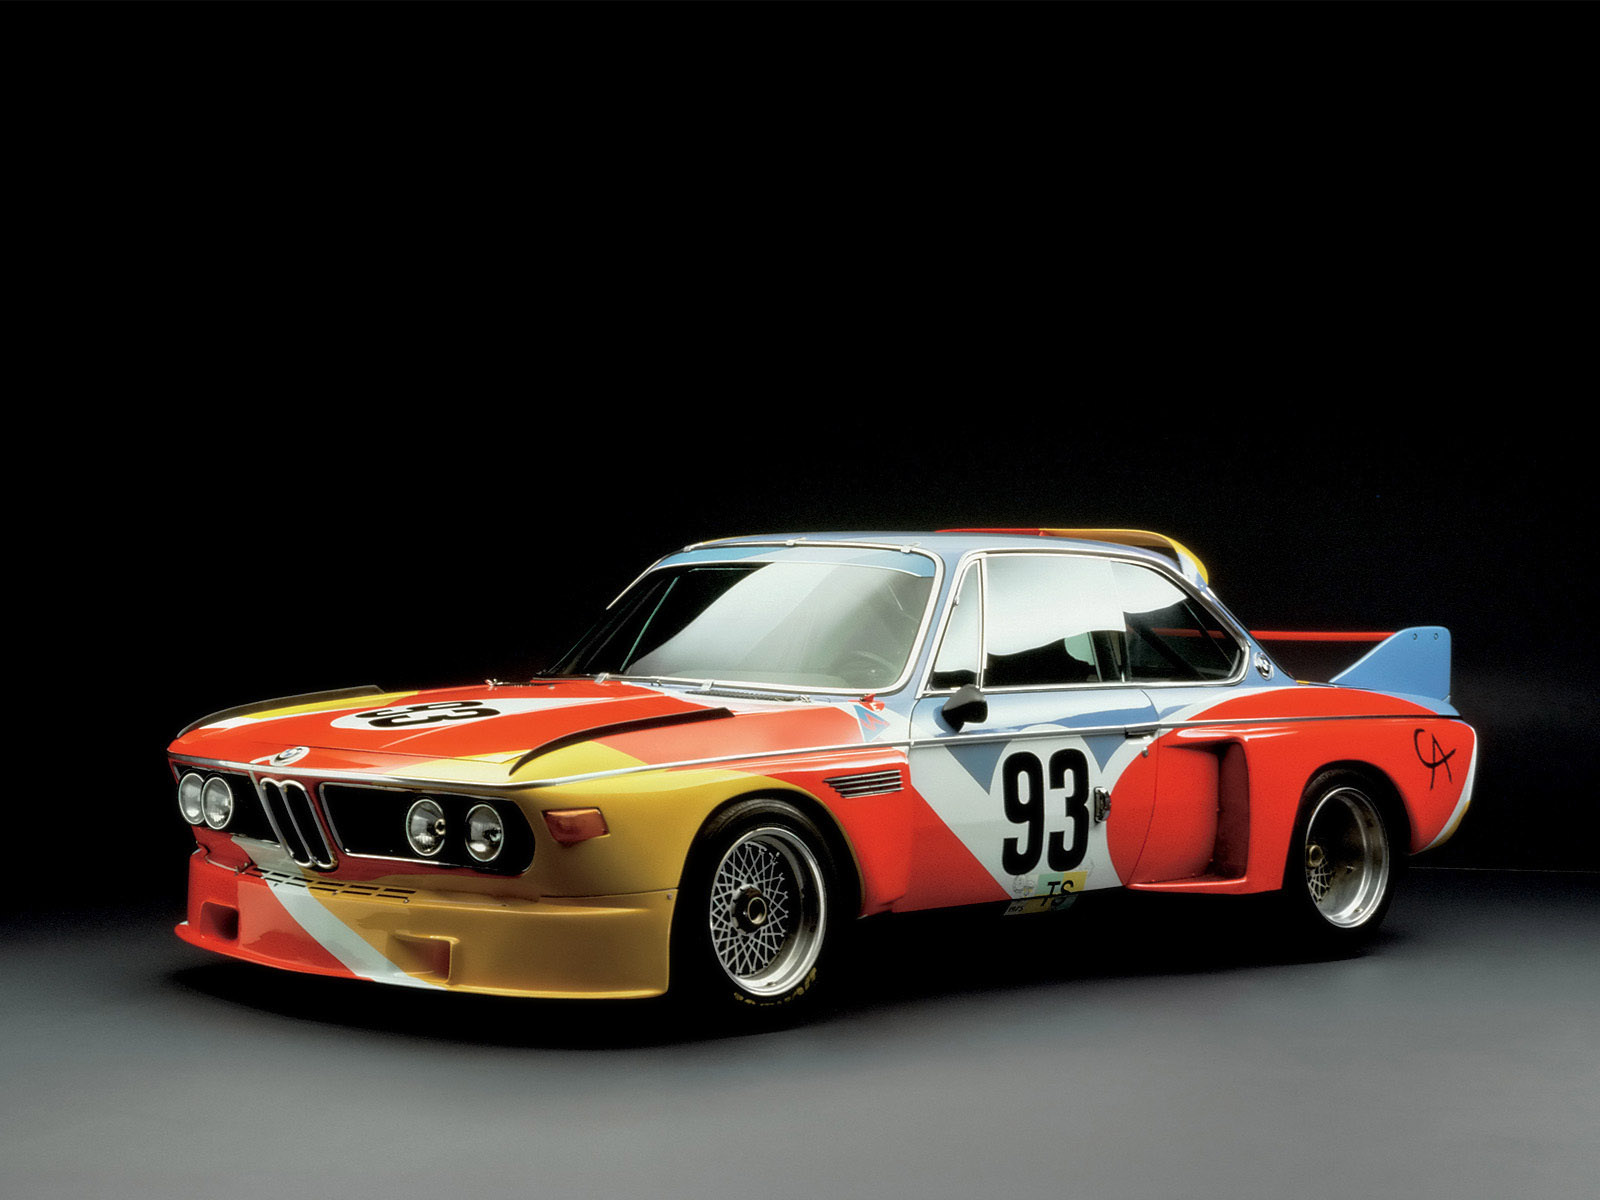 bmw_3-0-csl-art-car-by-alexander-calder-e9-1975_r2.jpg